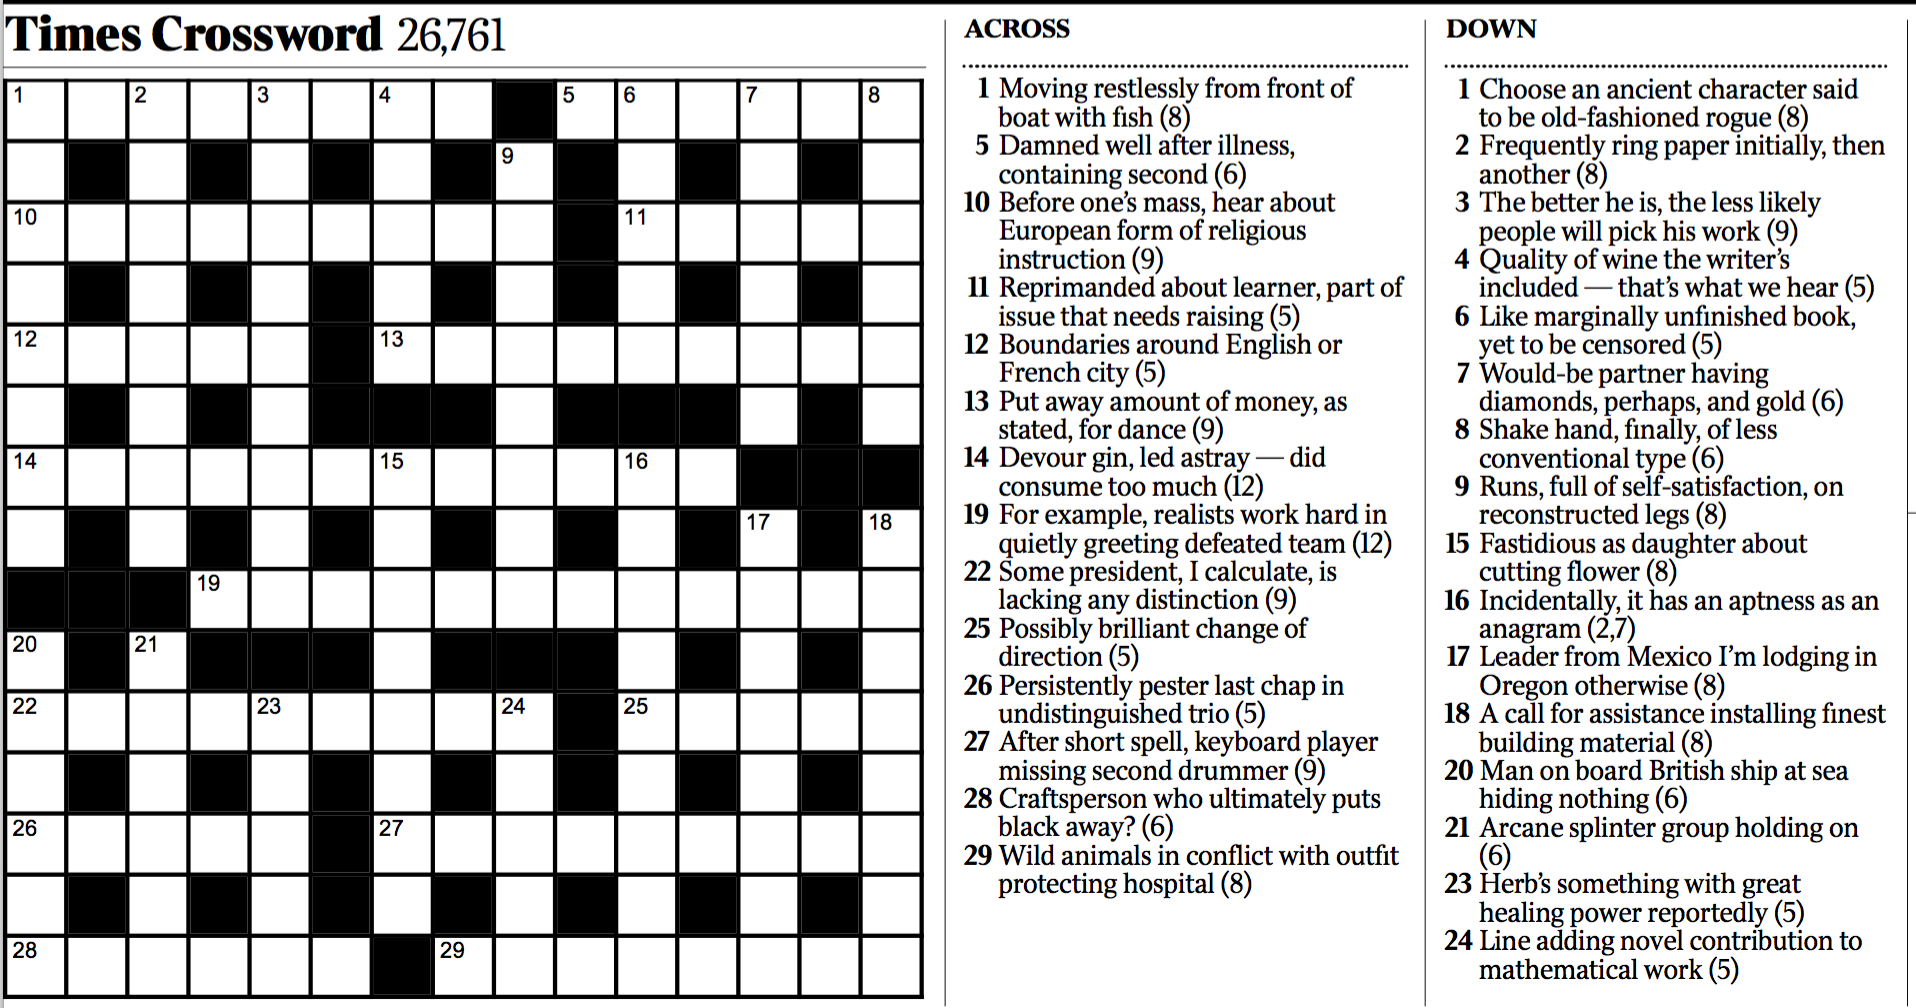 nytimescrossword.png (610 KB)